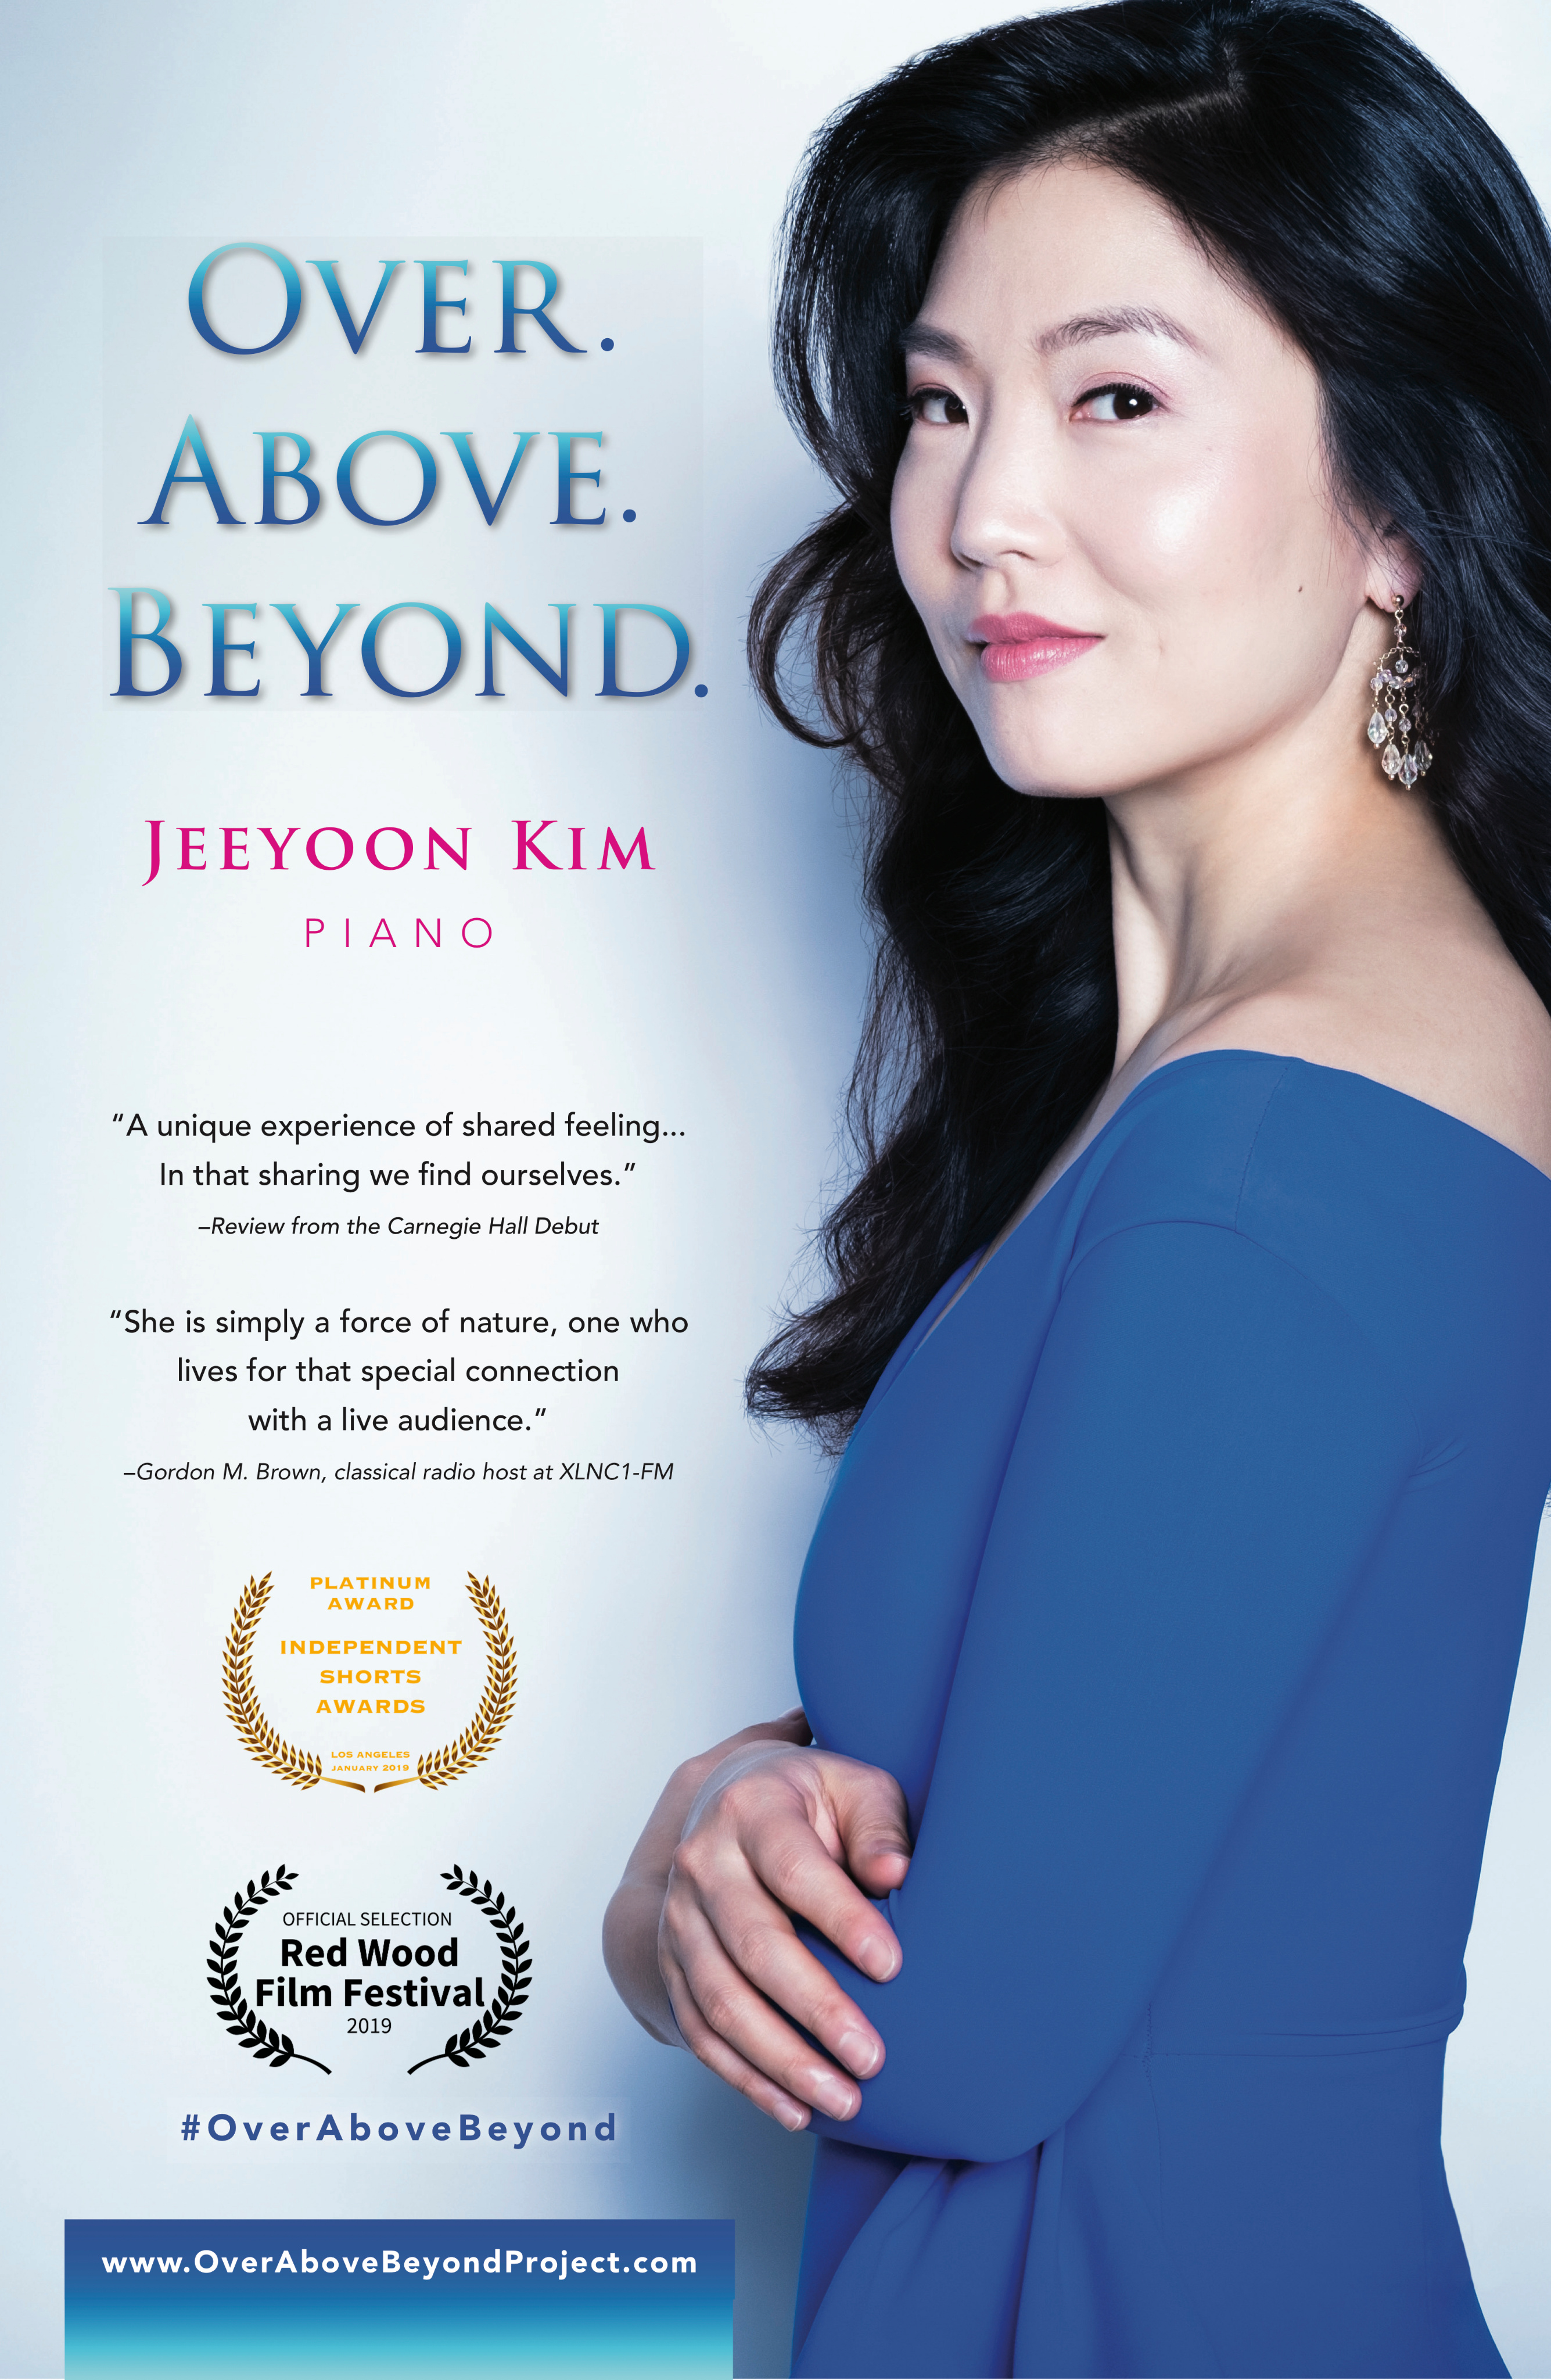 Jeeyoon Kim discusses her Over.Above.Beyond CD with Pastimes for a Lifetime